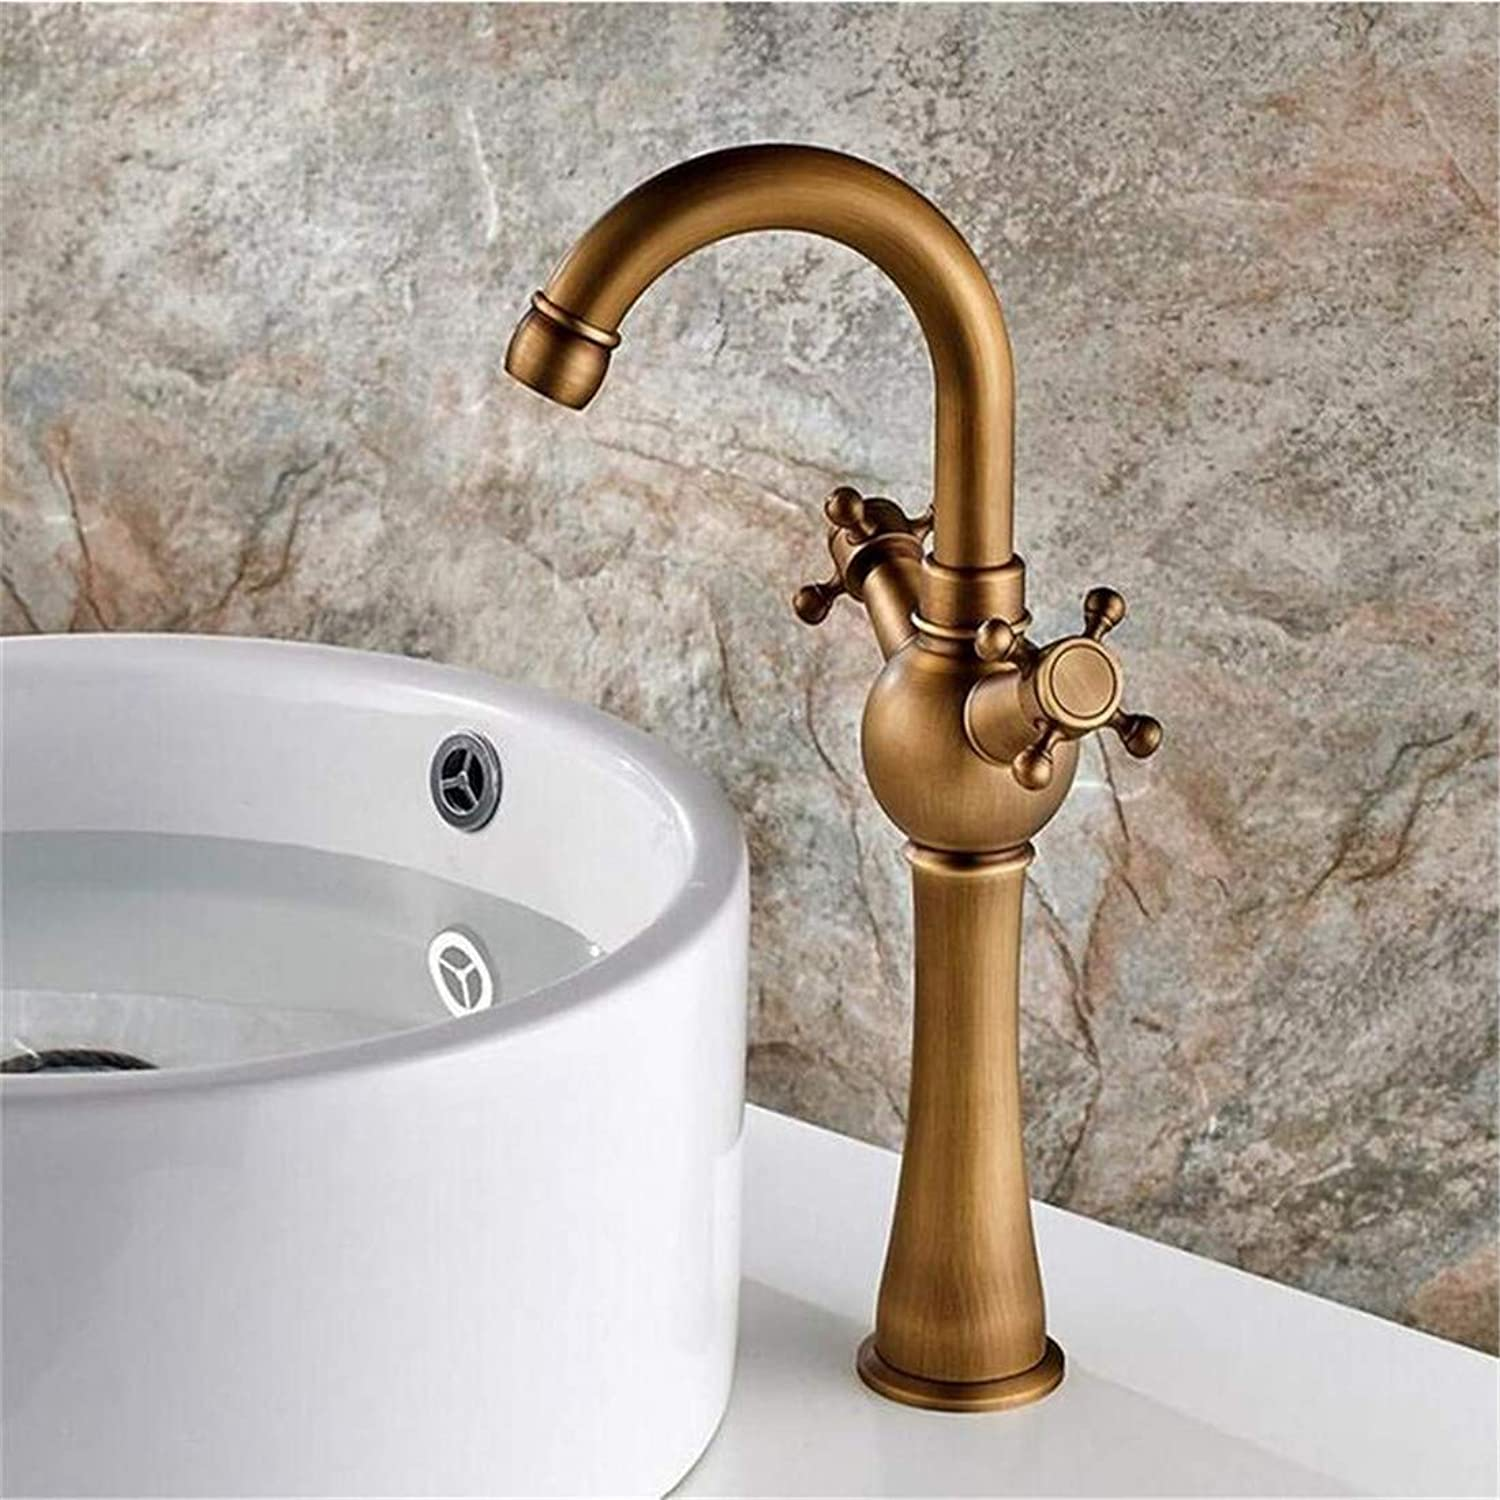 Retro Hot and Cold Water Brass Kitchen Copper Antique Bathroom Taps Point Deck Mounted Vintage Sink Basin Mixer